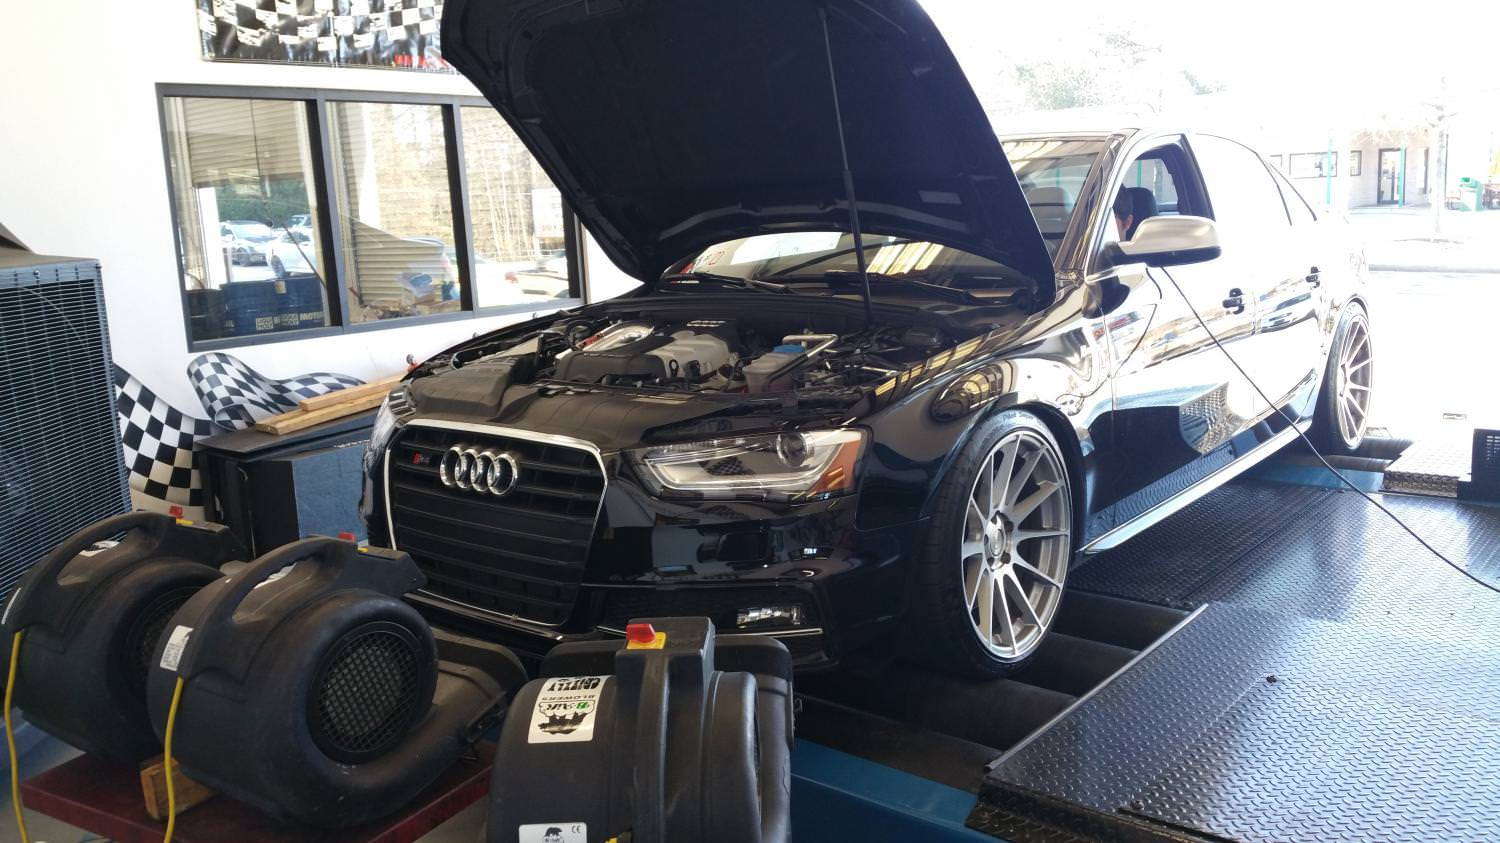 B8 5 S4 is in for custom tuning   | Solo Motorsports